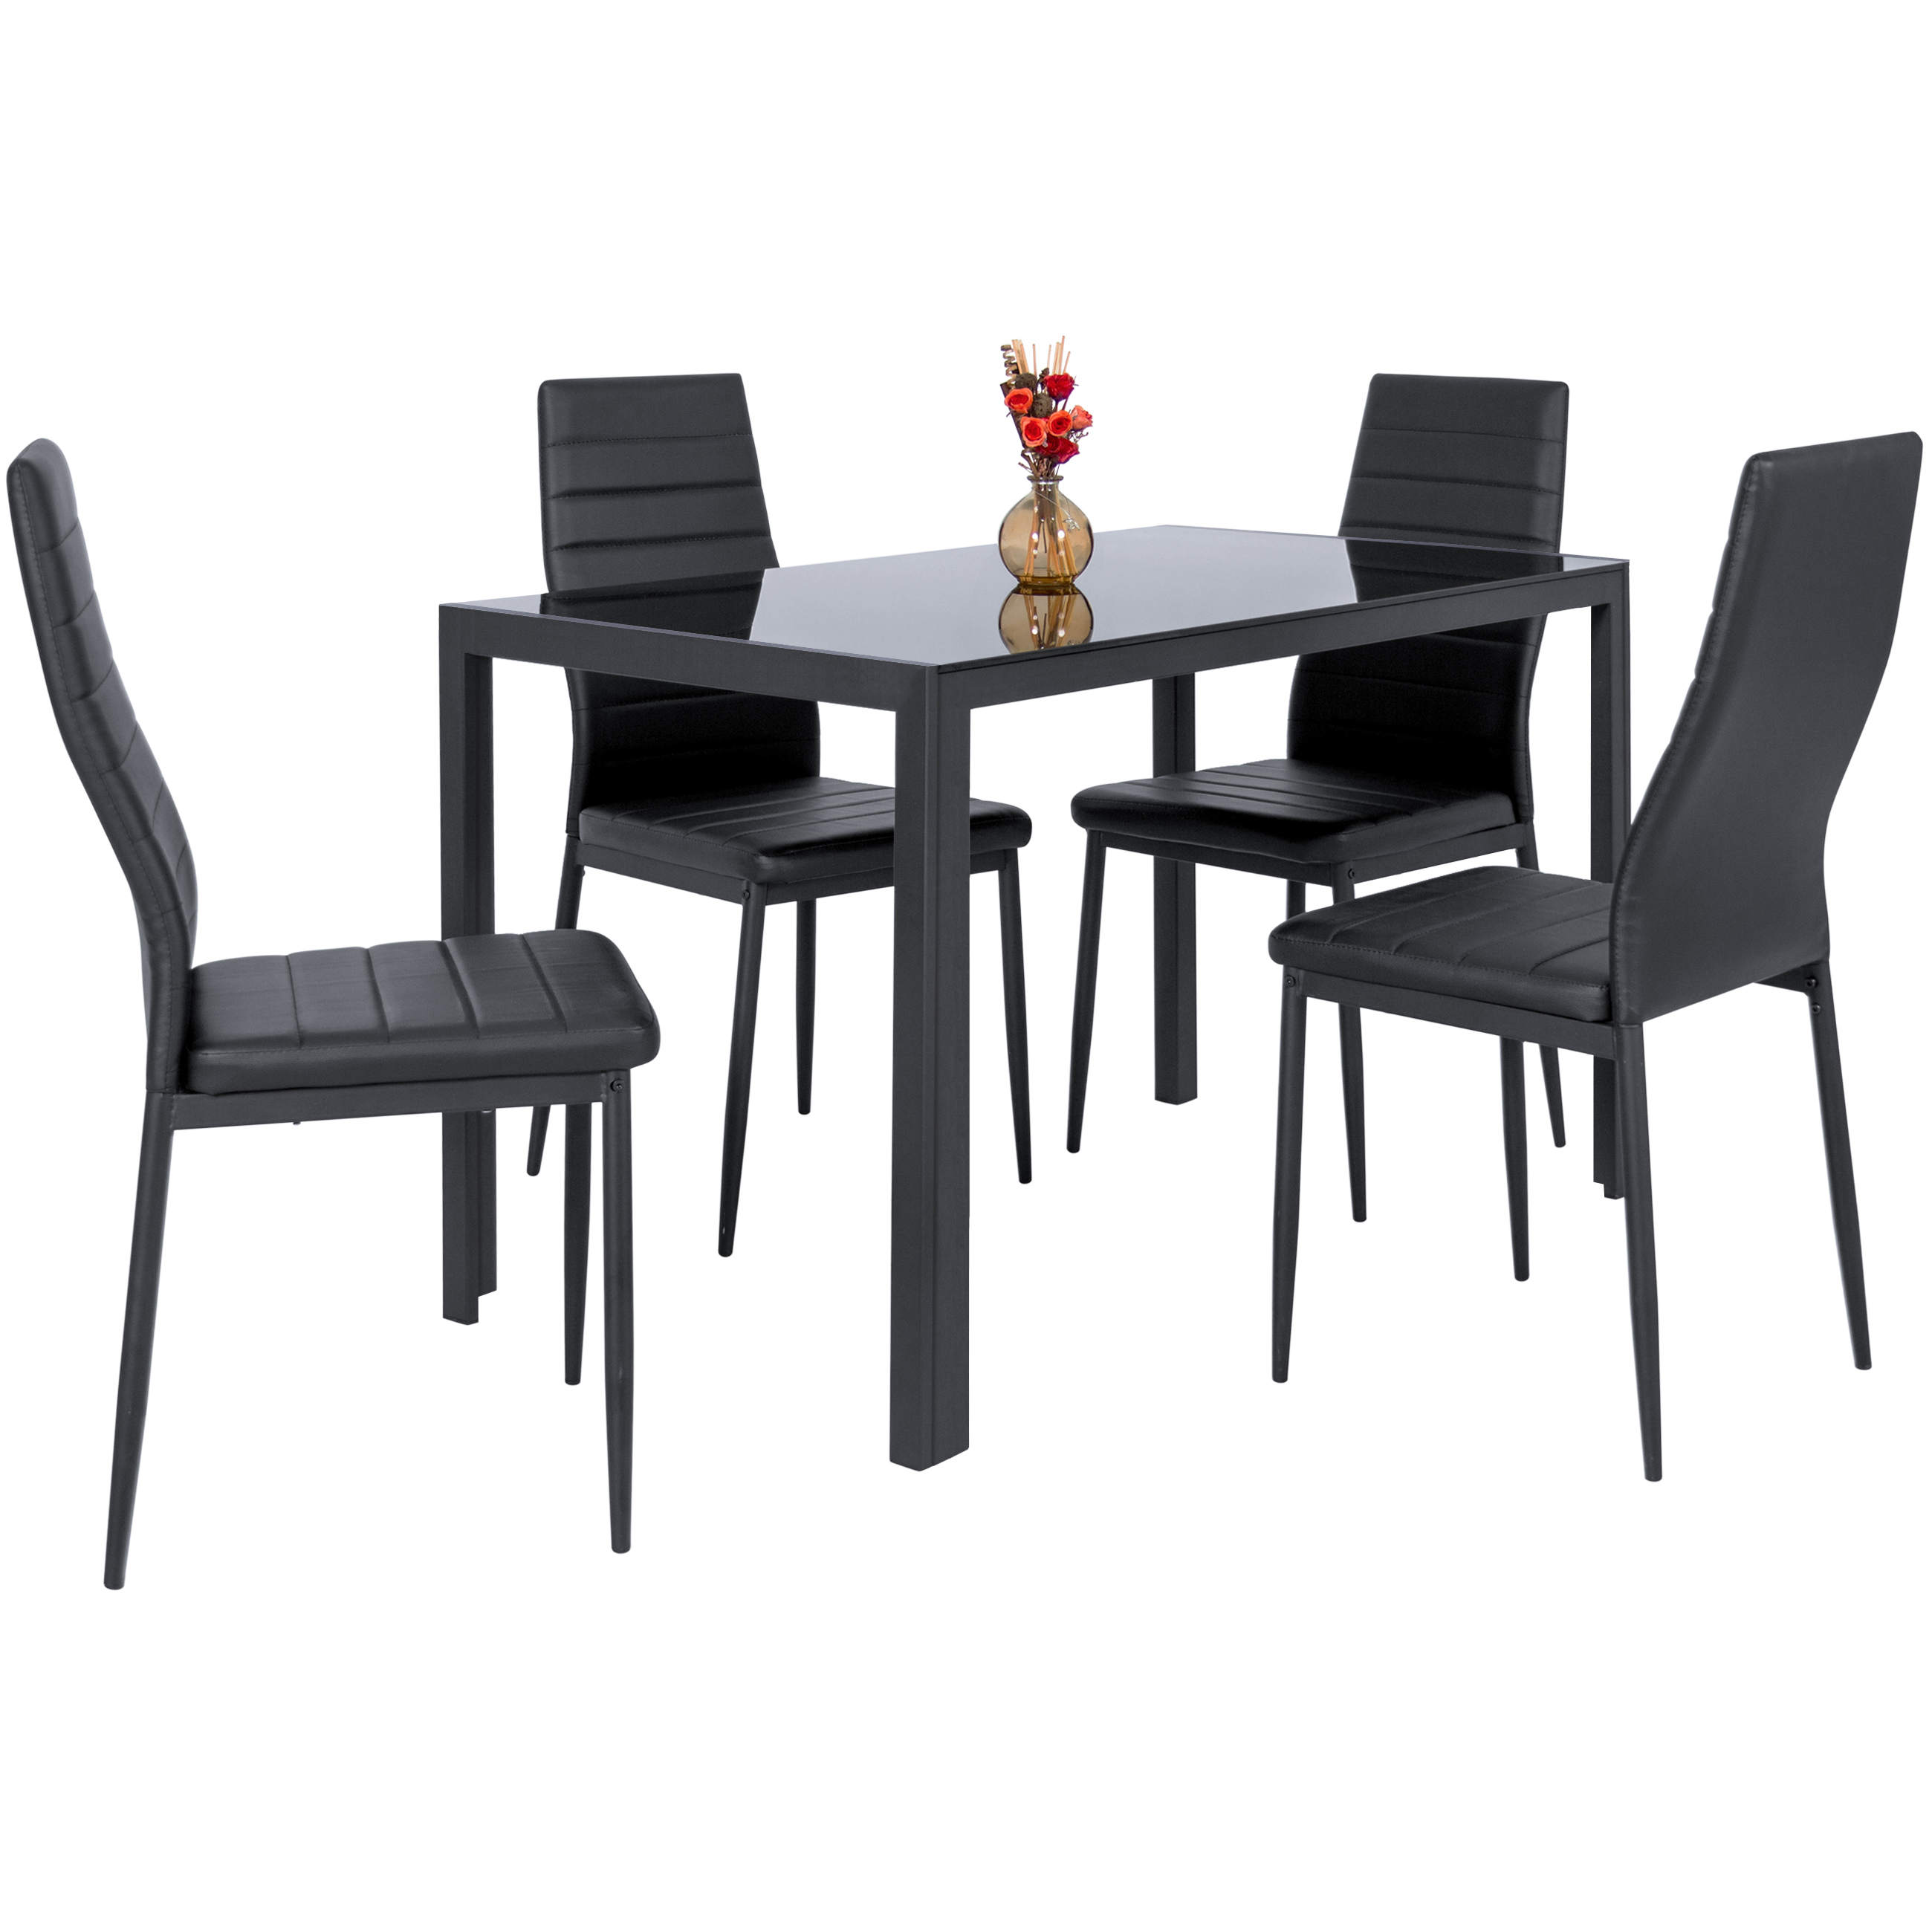 Zimtown Modern Dining Table Set 4 Chair Glass Metal Kitchen Room Breakfast Furniture